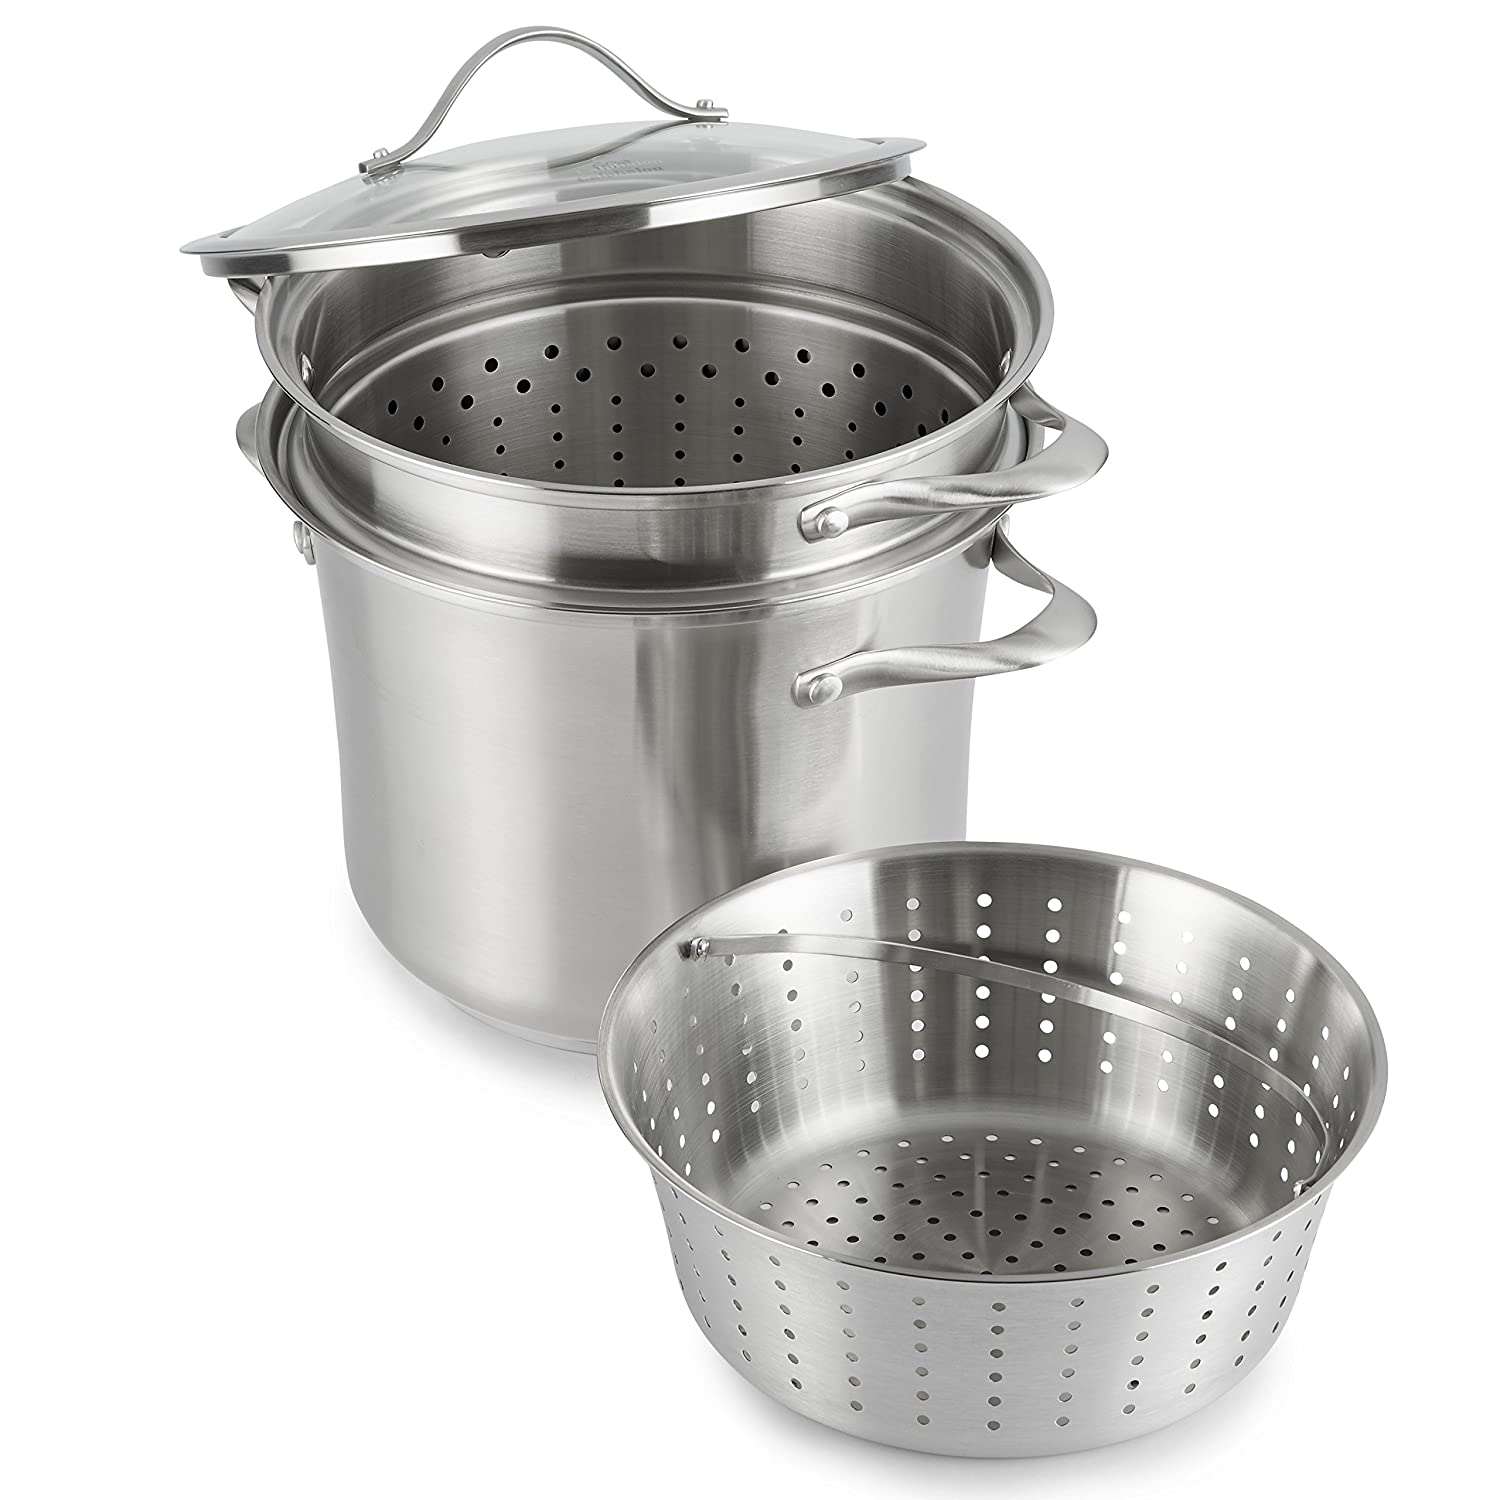 Calphalon Contemporary Stainless Steel Cookware/Multi-Pot, 8 quart